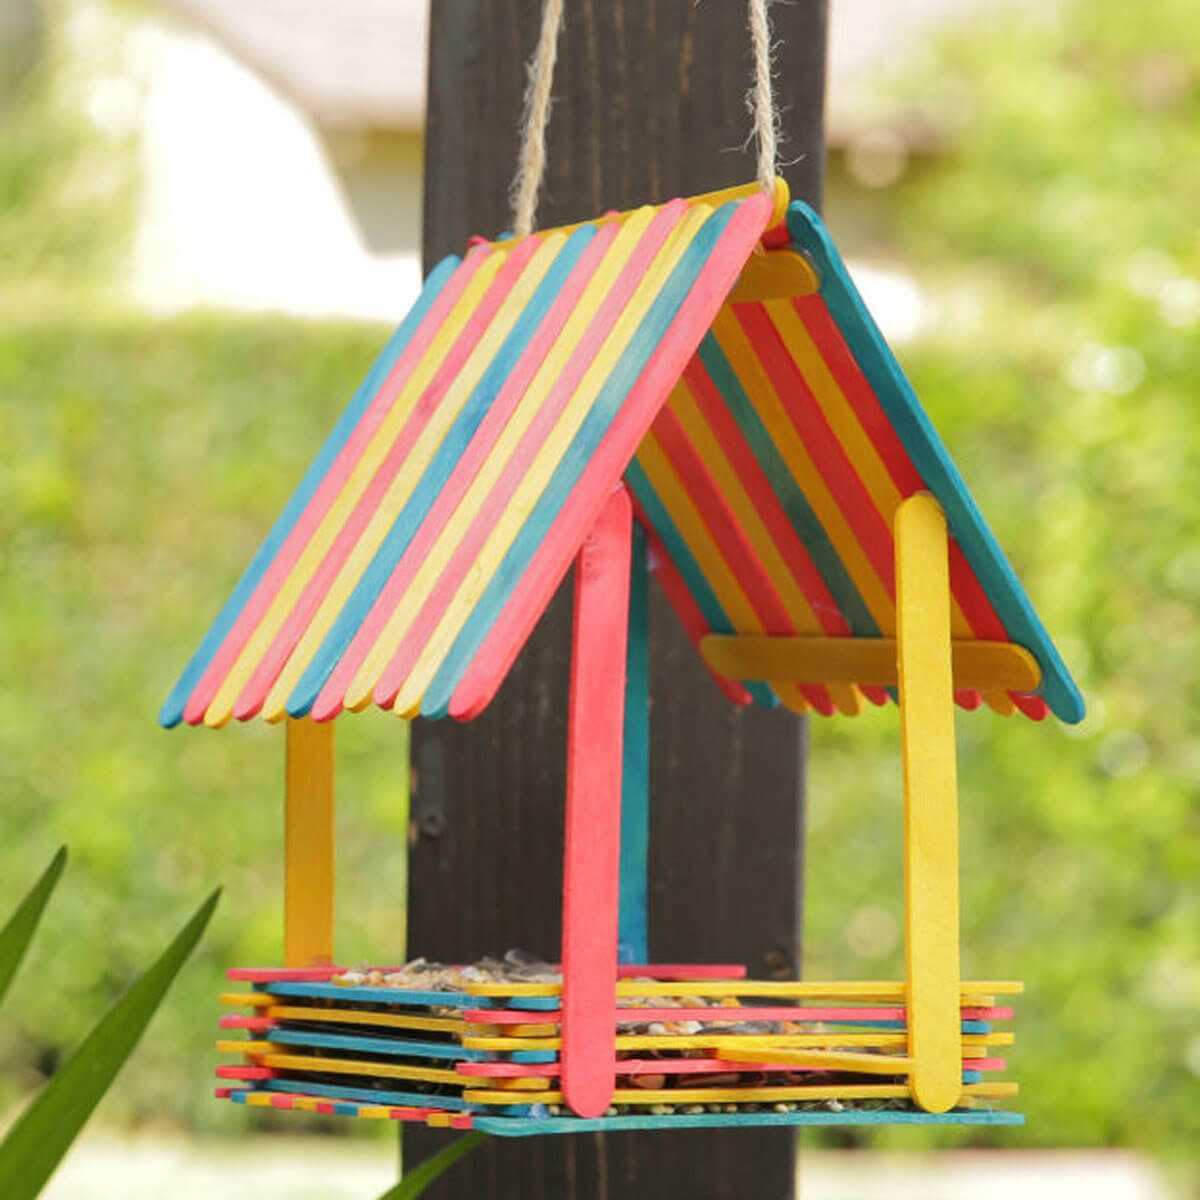 16 Seriously Cool Birdhouses The Family Handyman